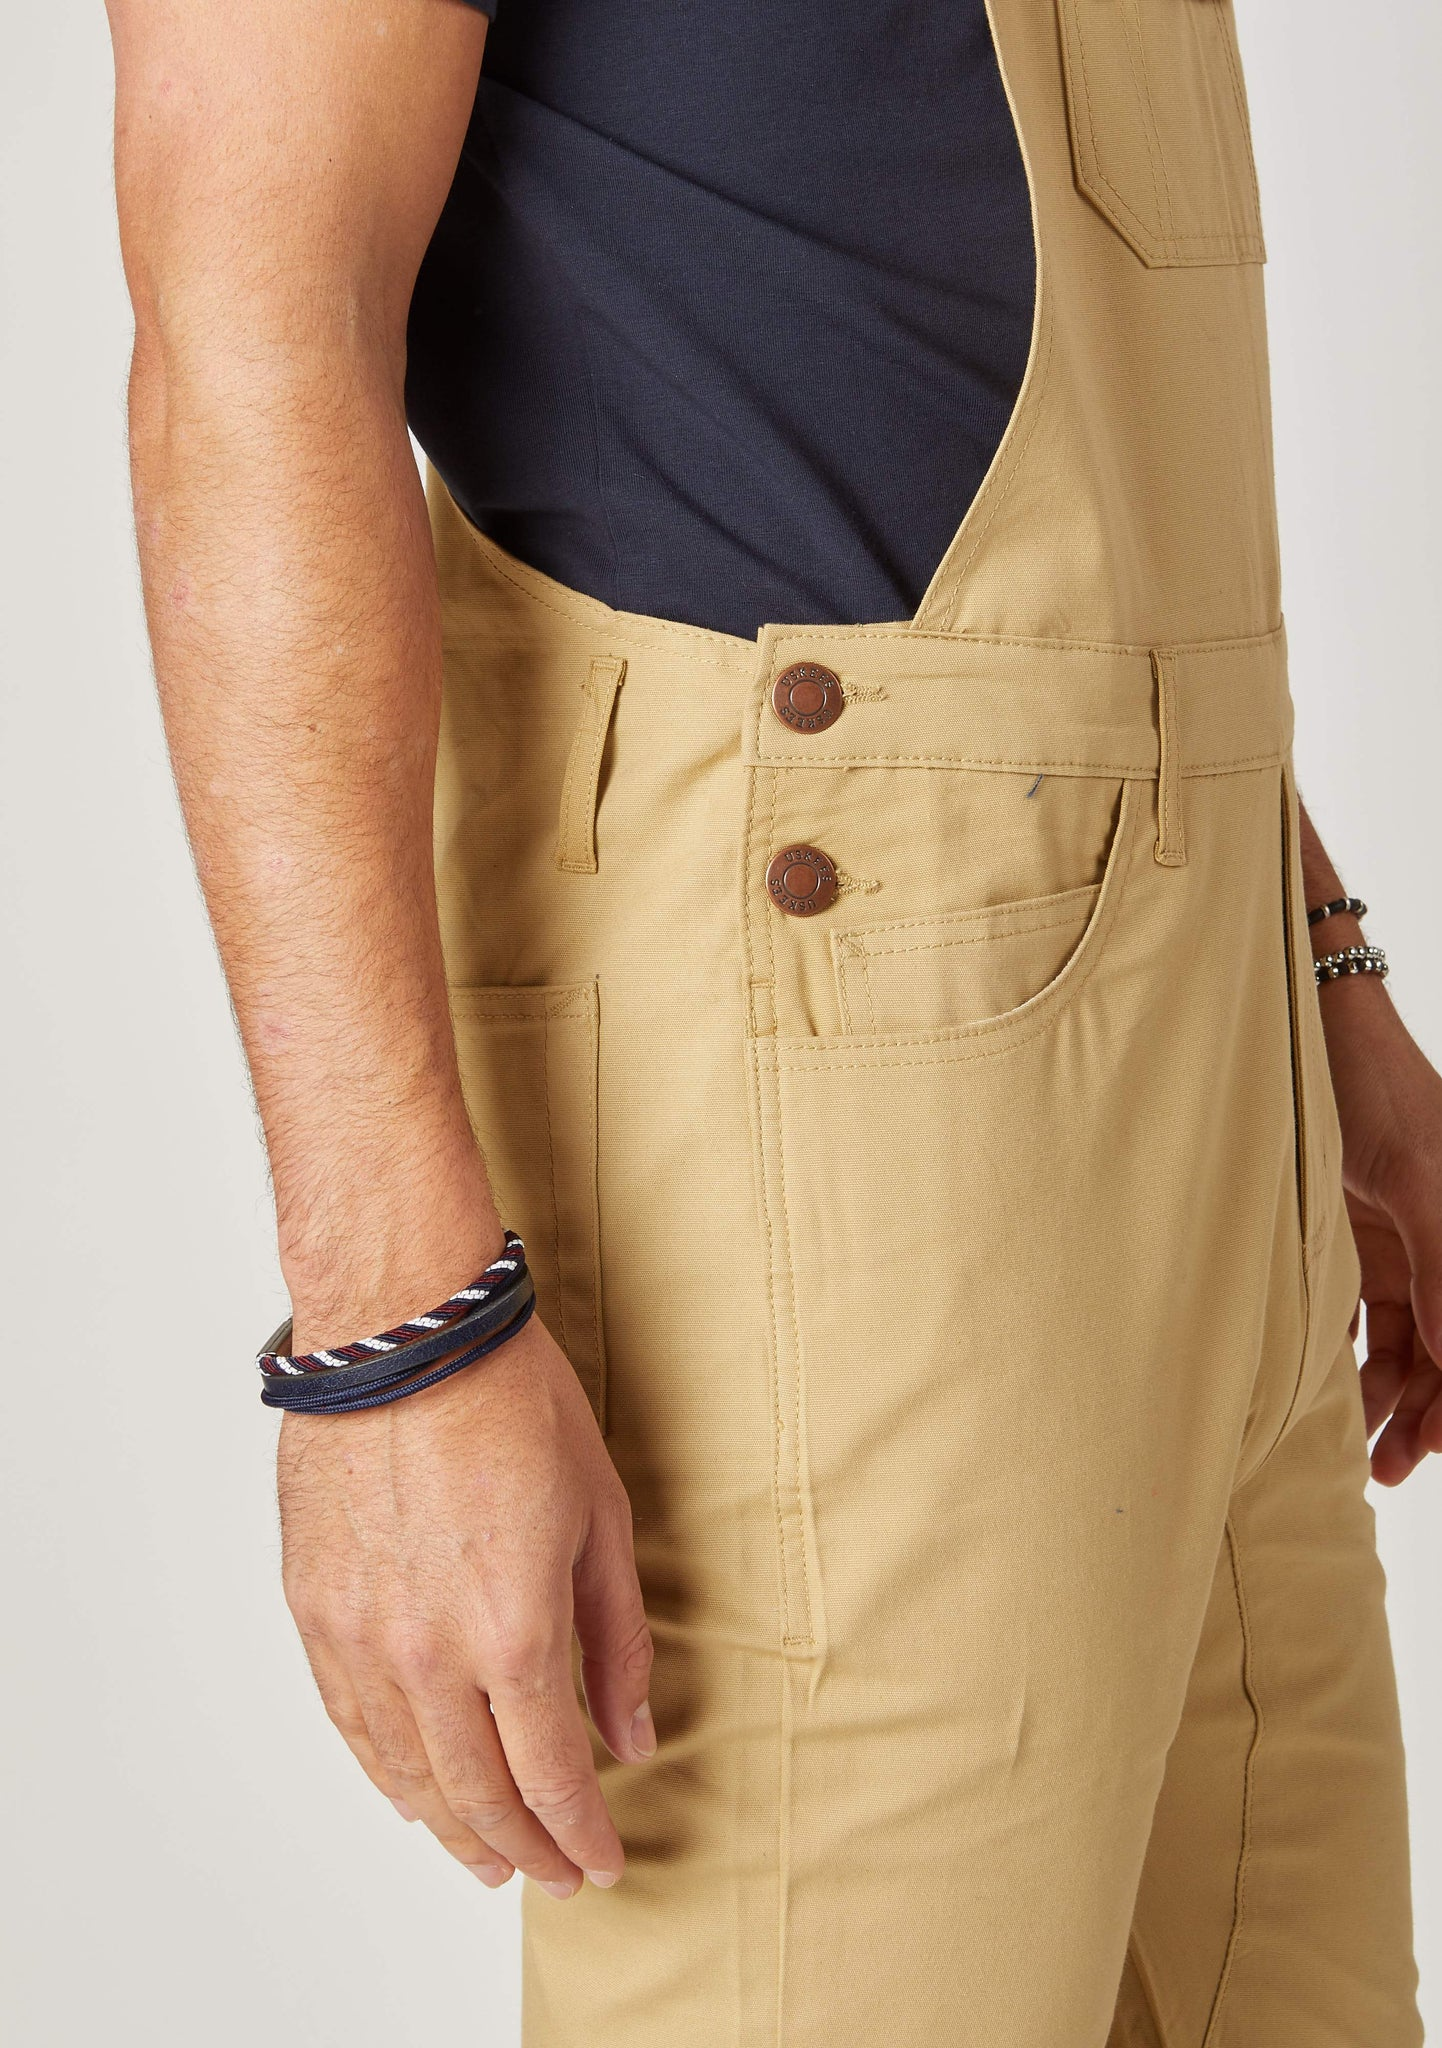 Close-up side view of men's slim-fit faded-yellow khaki bib-overalls with clear view of side button fastening and belt loops.